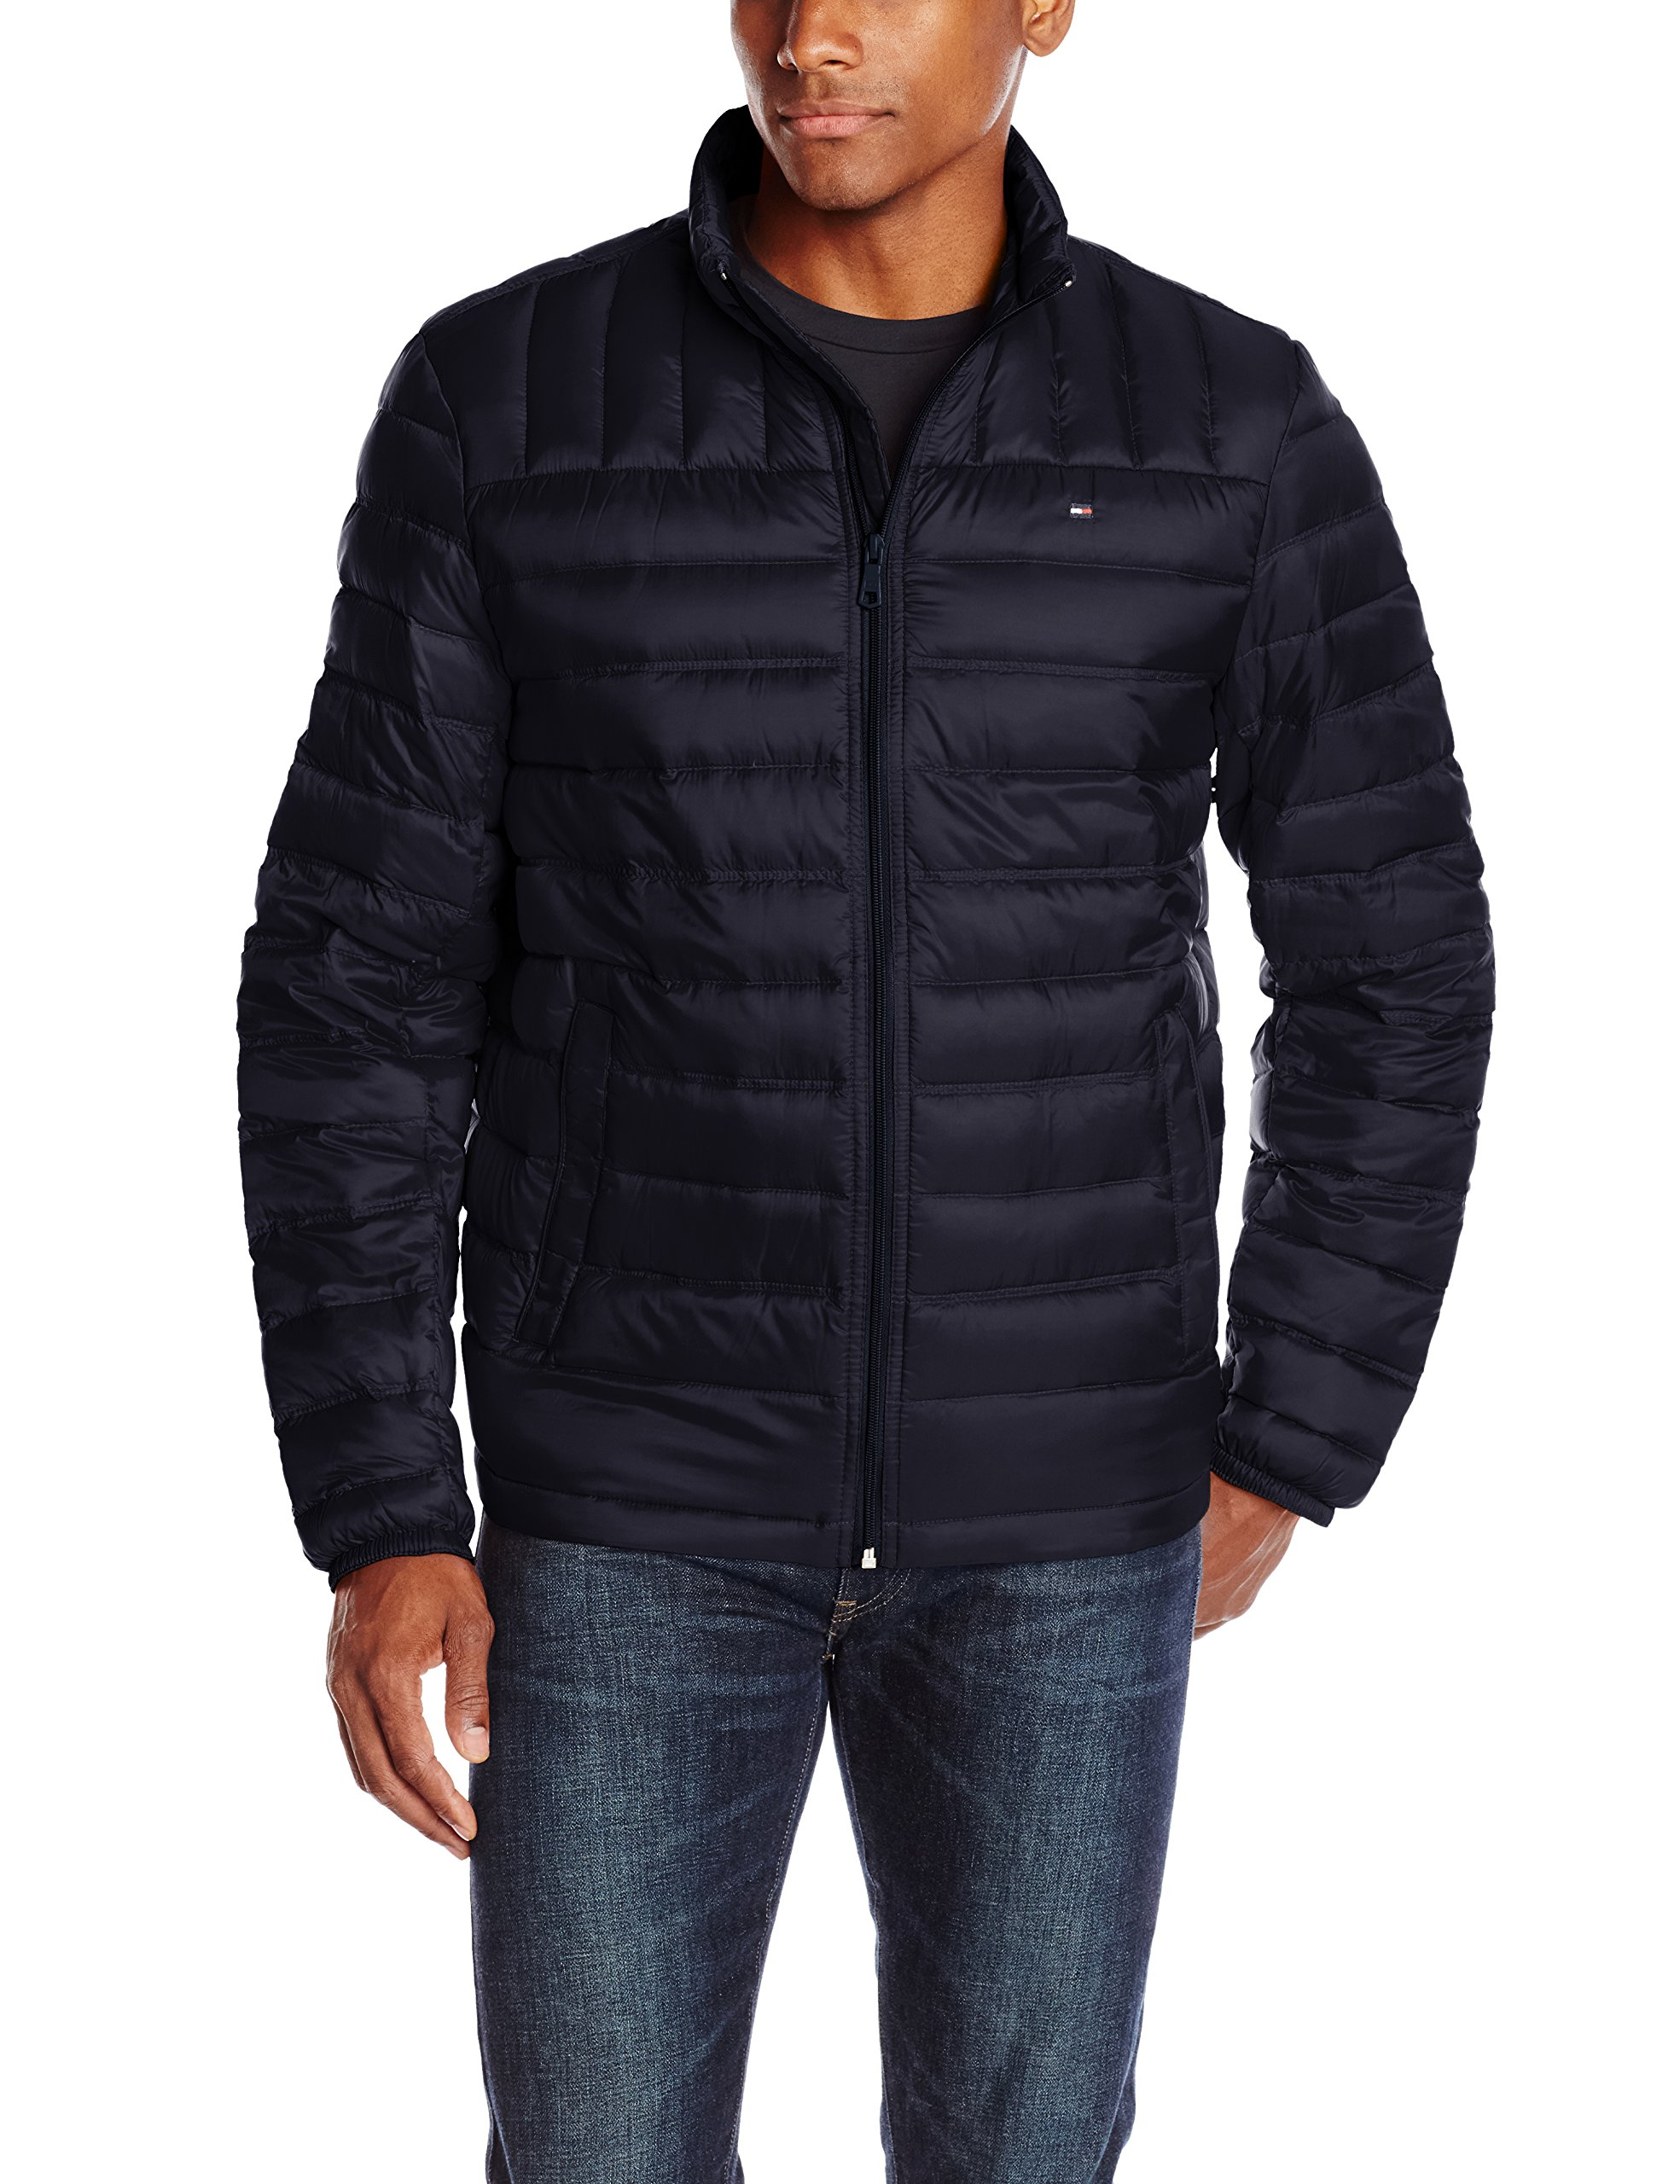 Tommy Hilfiger Men's Packable Down Jacket (Regular and Big & Tall Sizes), Midnight, Small by Tommy Hilfiger